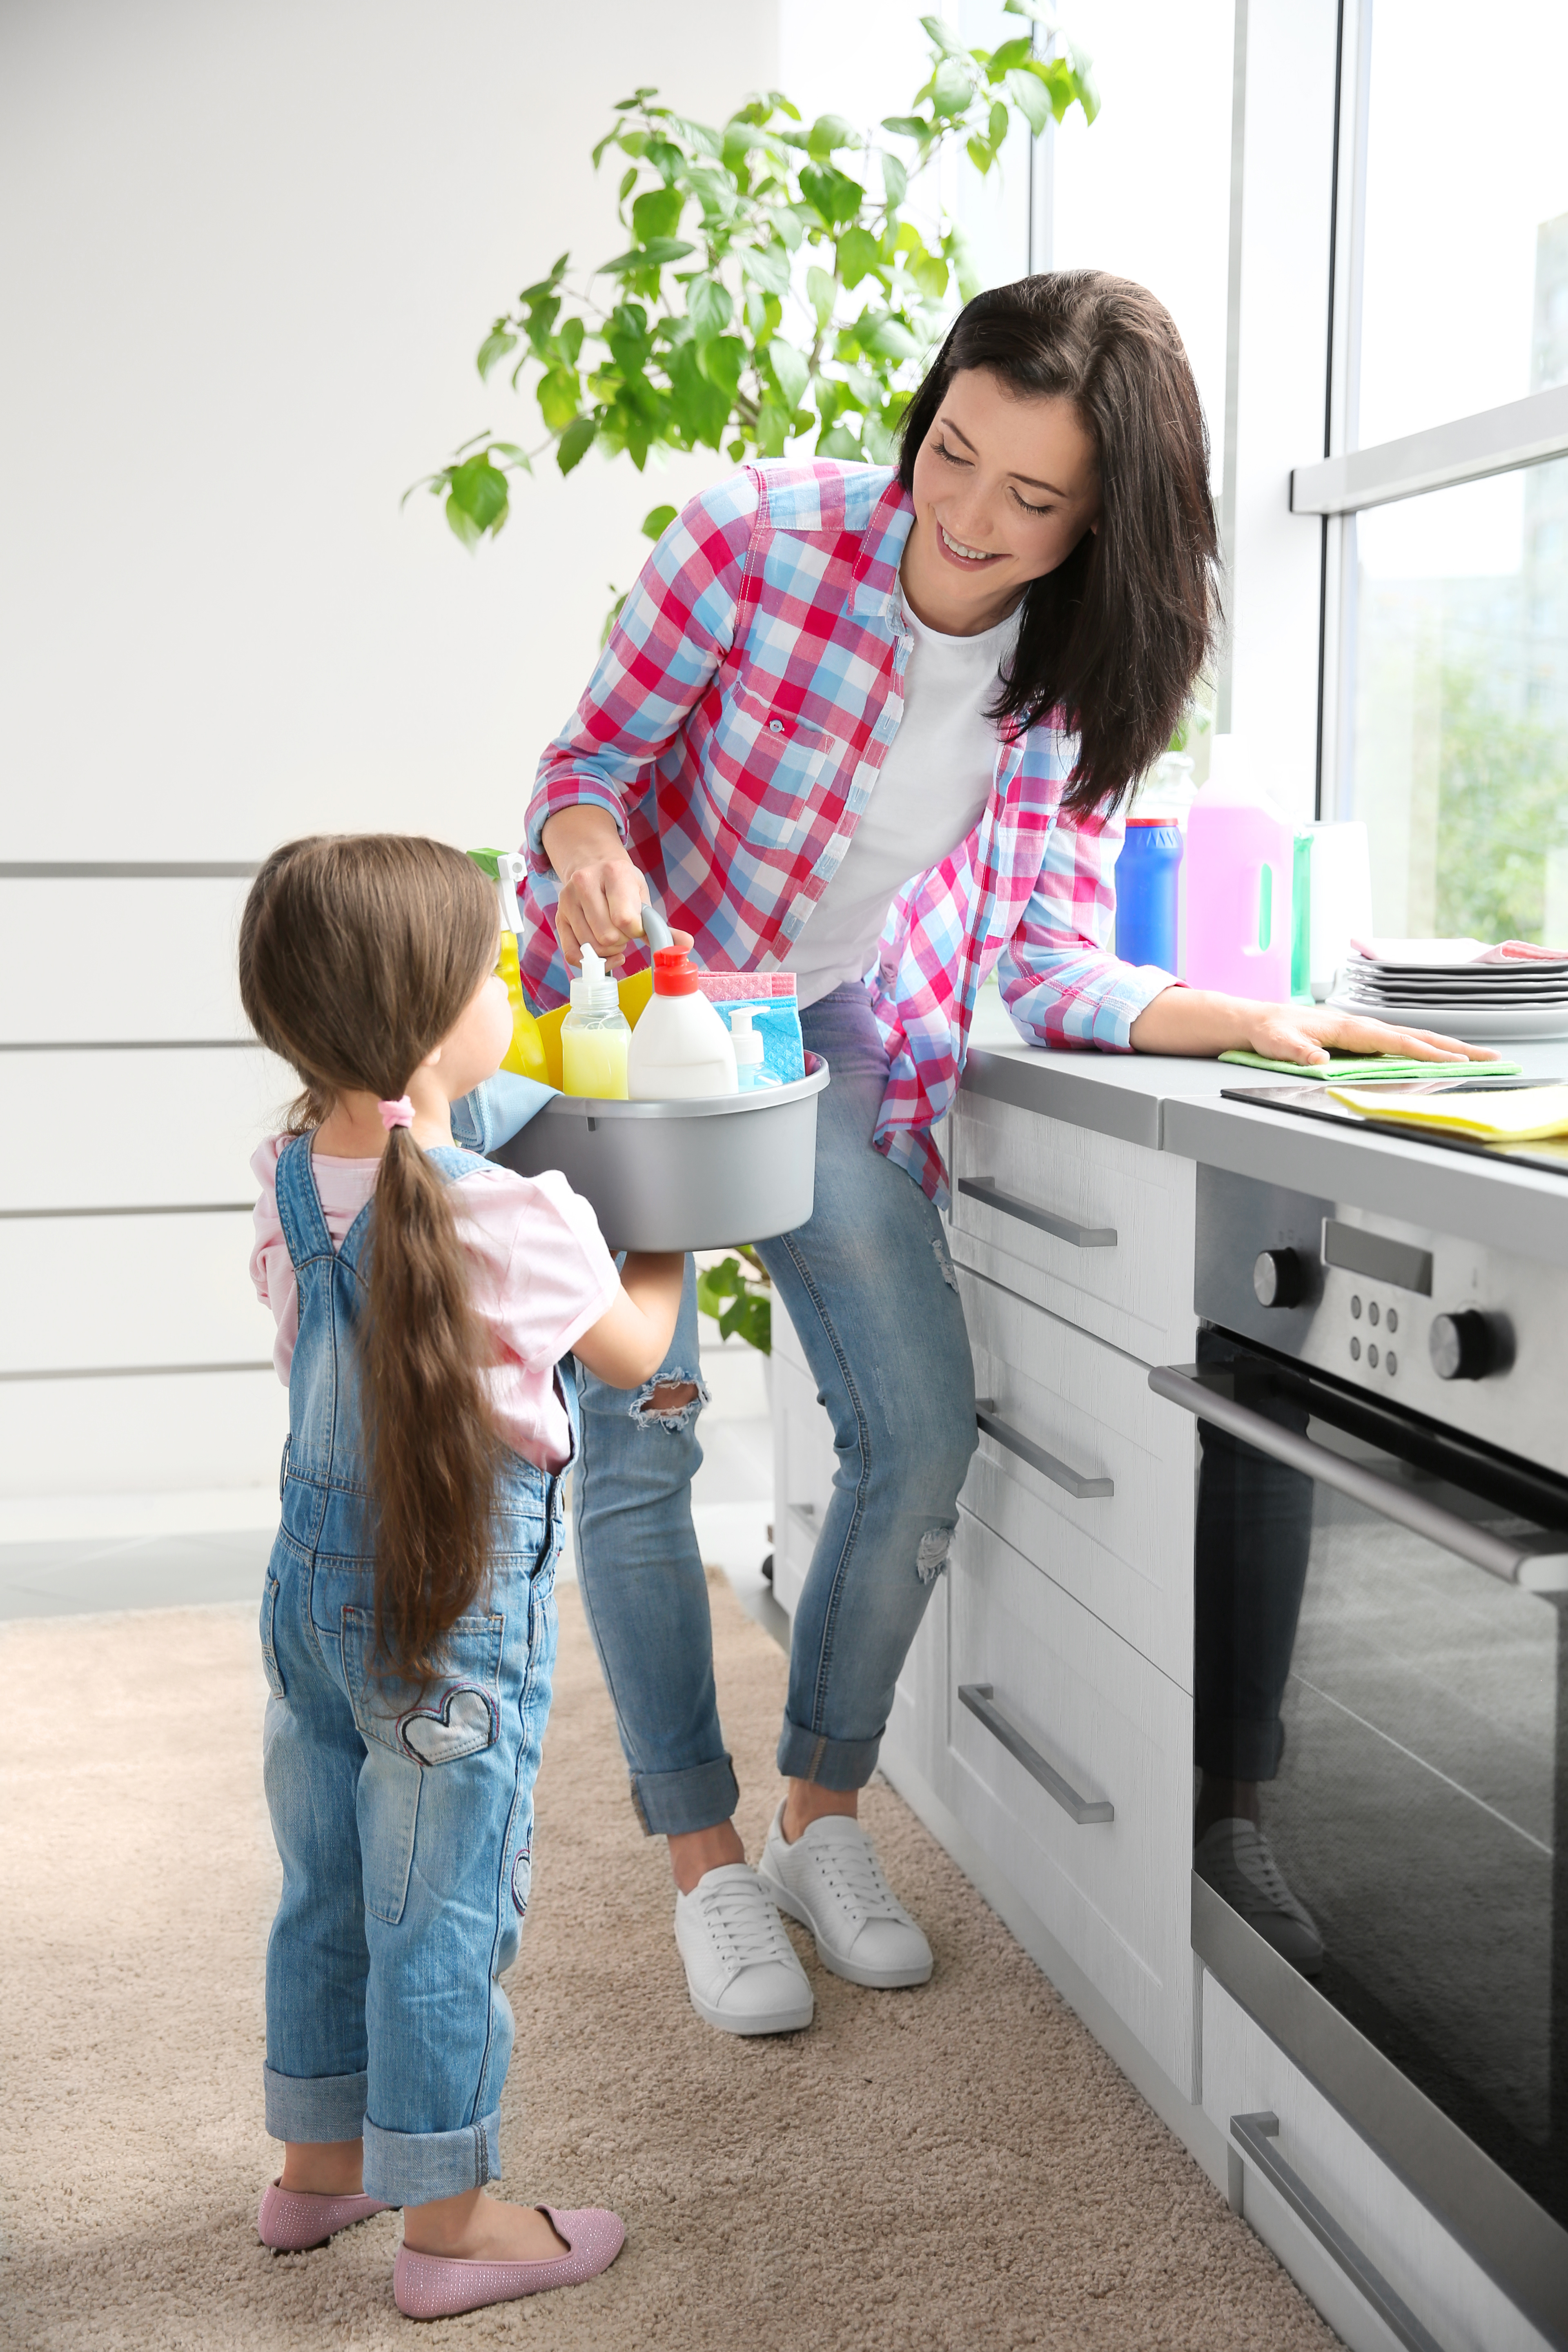 Four Easy Cleaning Tricks for Busy Moms